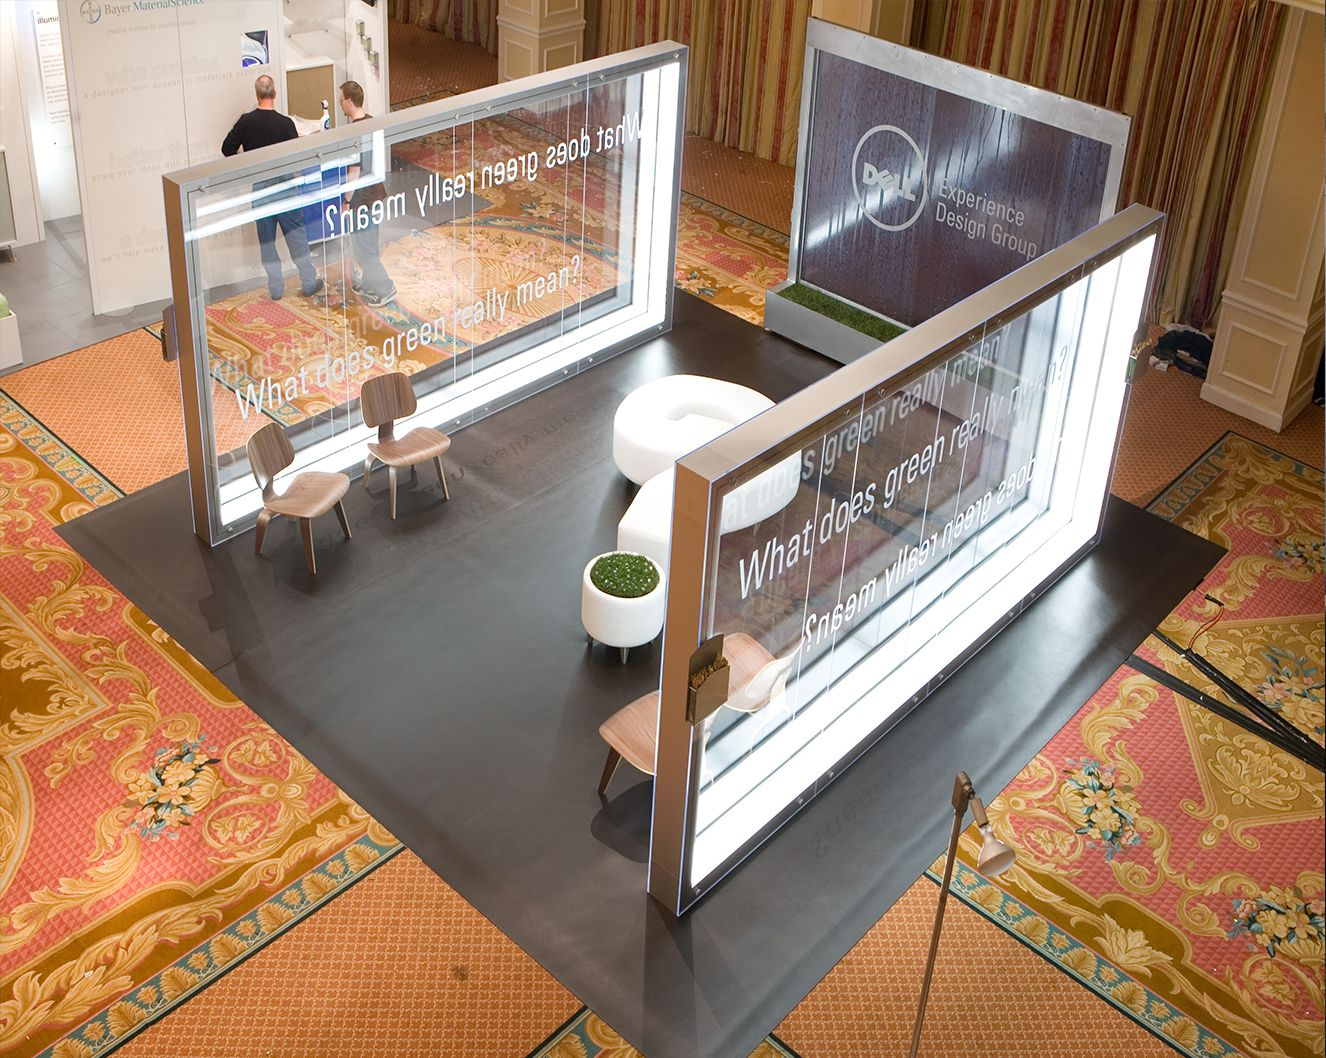 Clear walls define the space without making it feel confined or tiny Thoughtful exhibit design